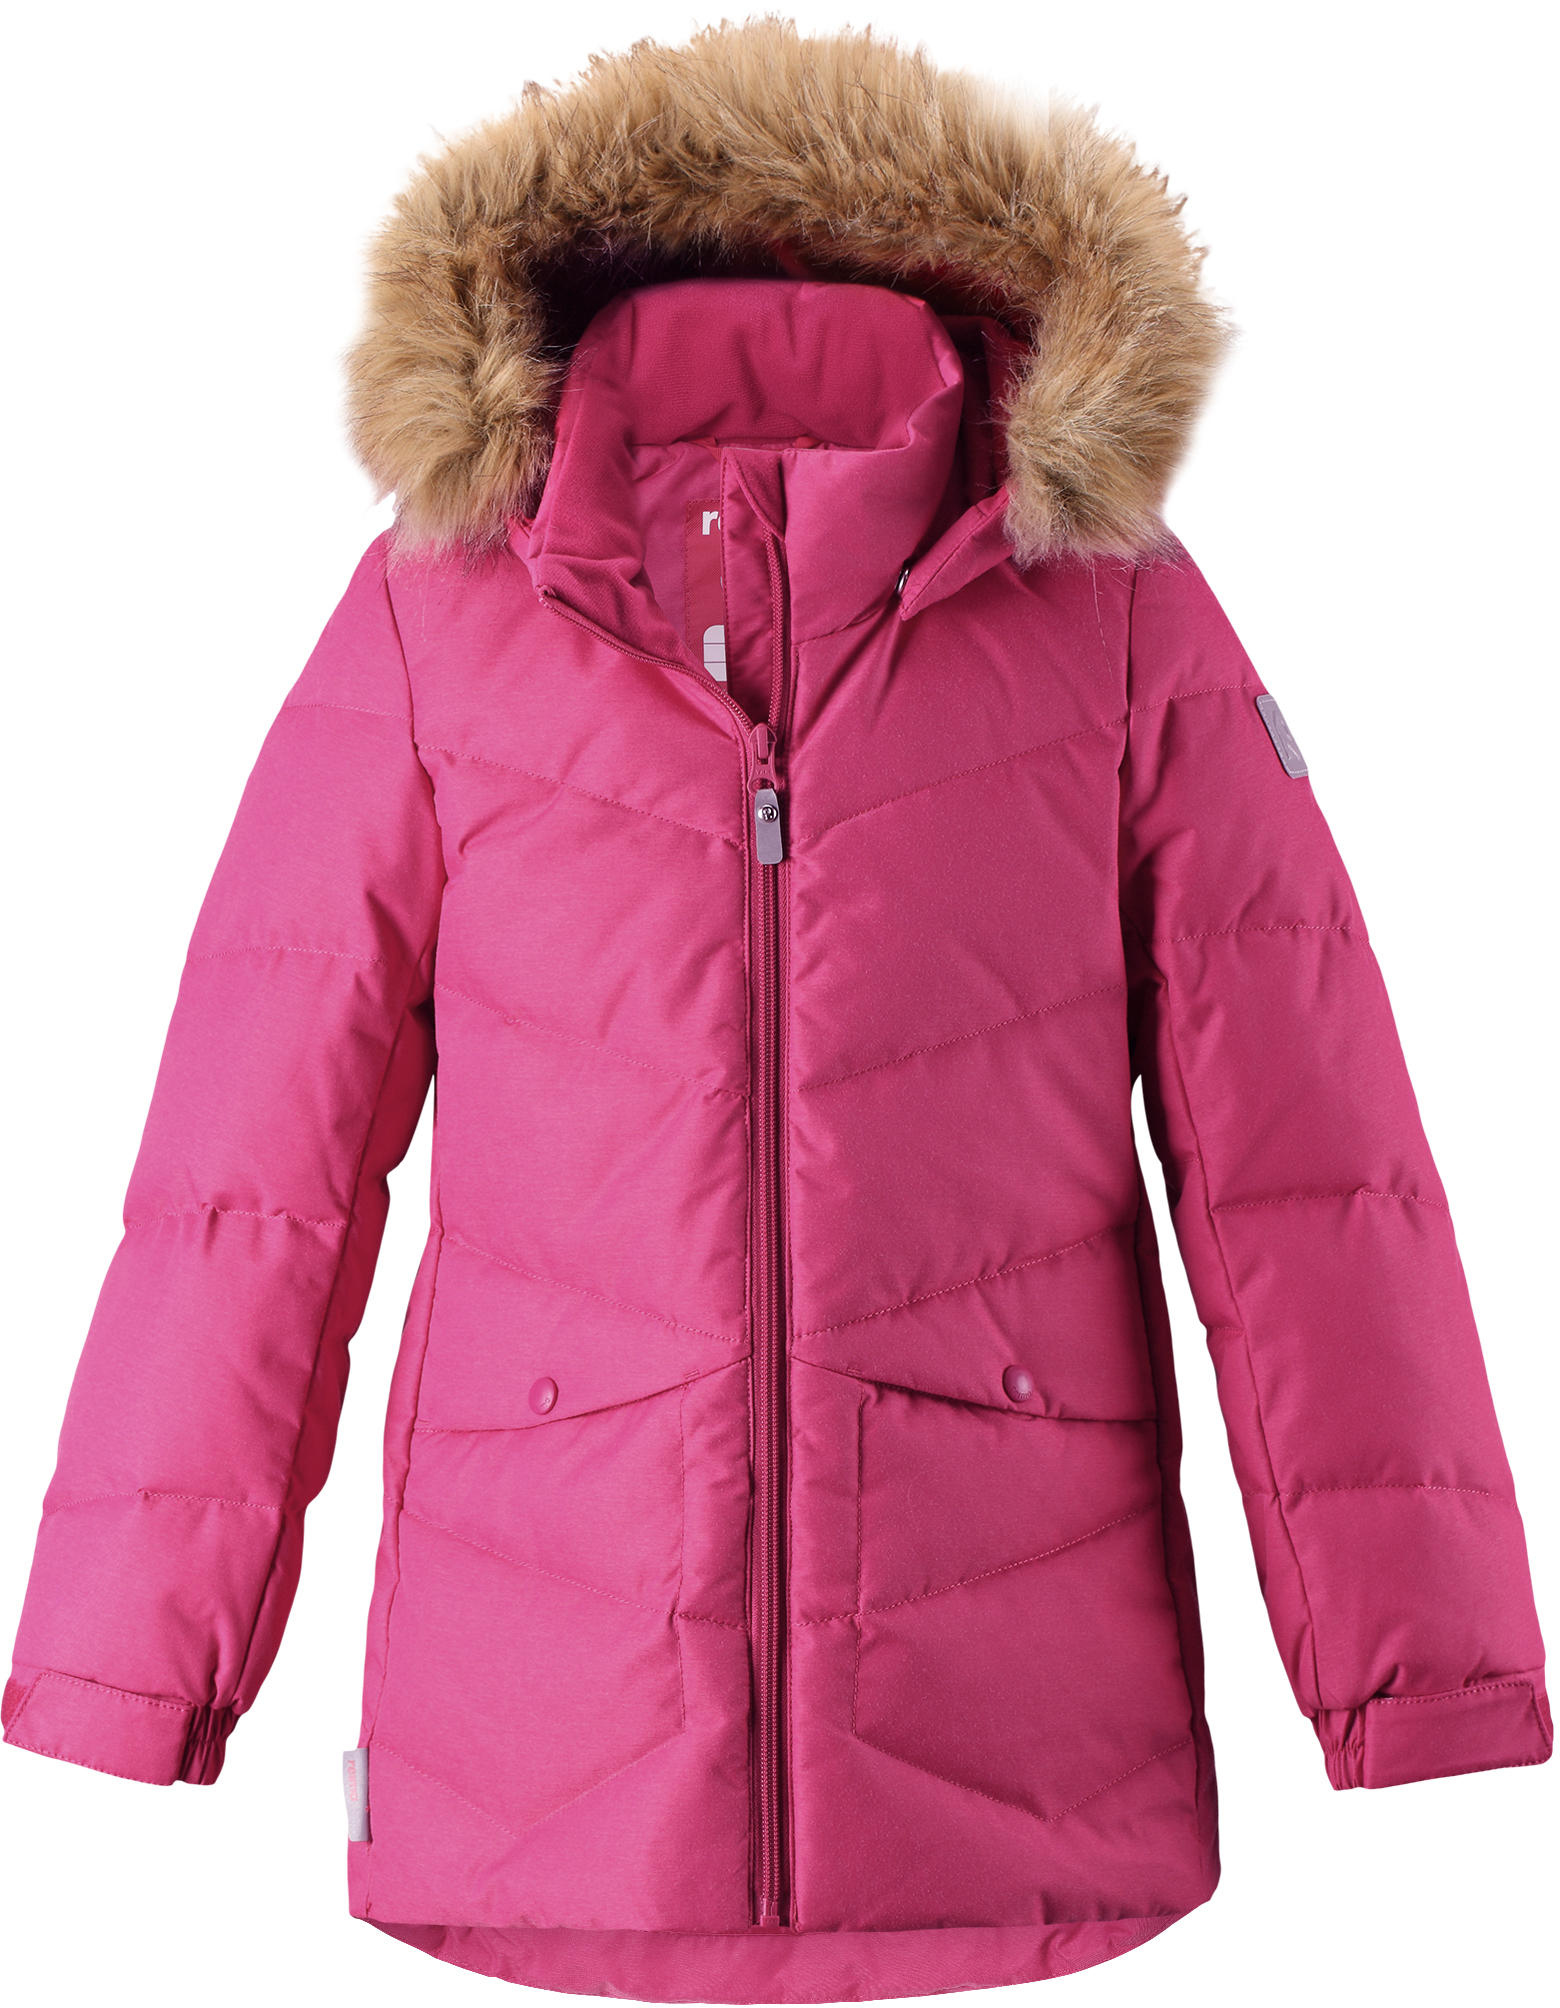 80ae54fe8 Reima Leena Down Jacket - Girls  - Youths